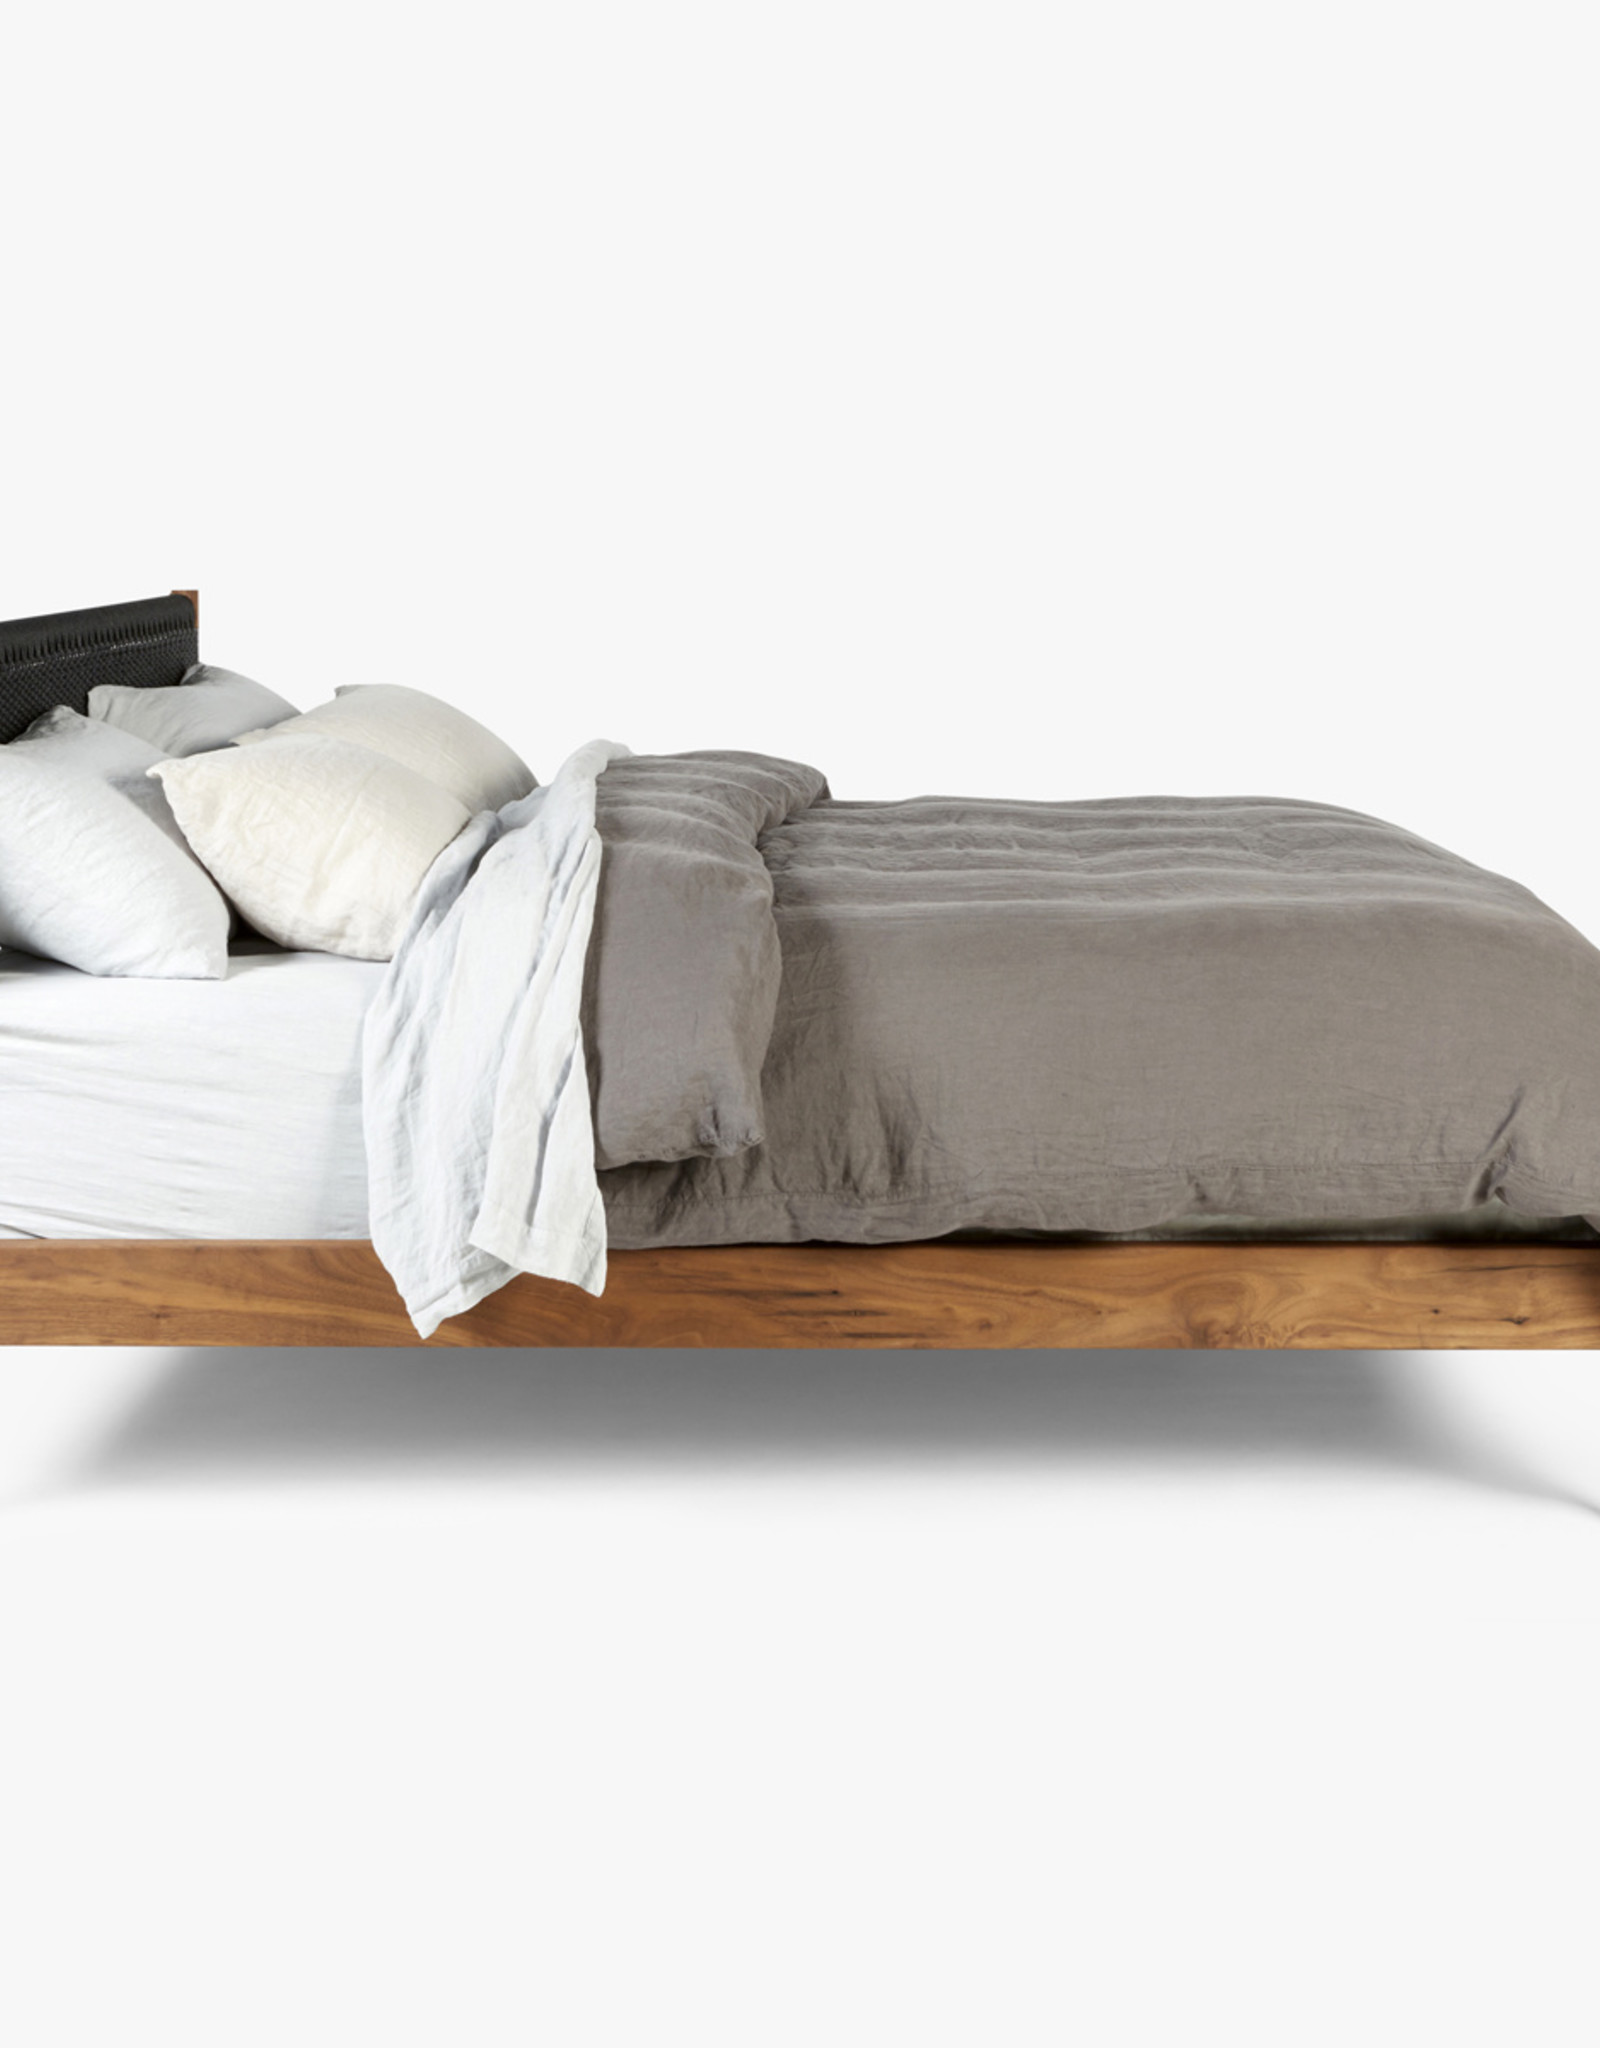 Klassik Papercord Bed by Great Dane | Queen | Black cord heading | Oiled walnut frame